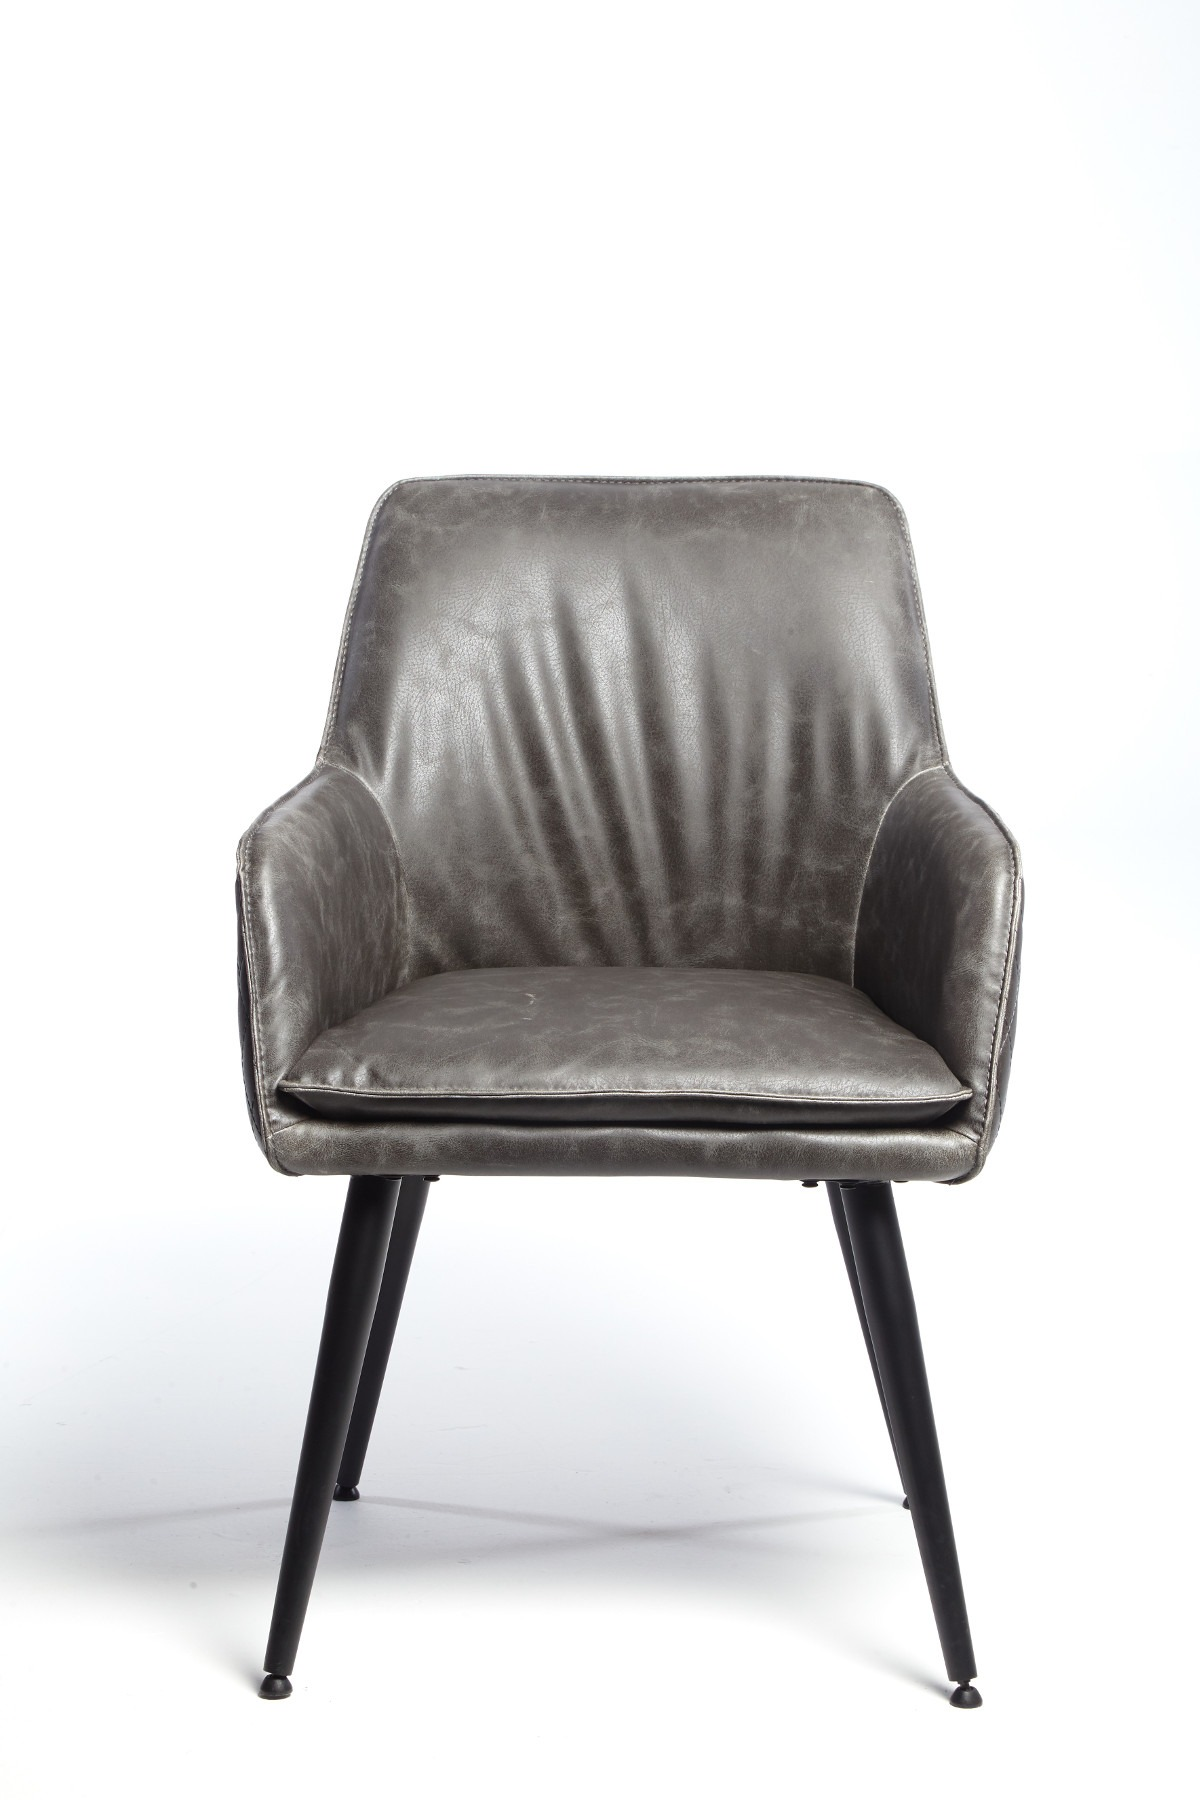 ORLANDO GREY DINING CHAIR - FRONT DETAIL